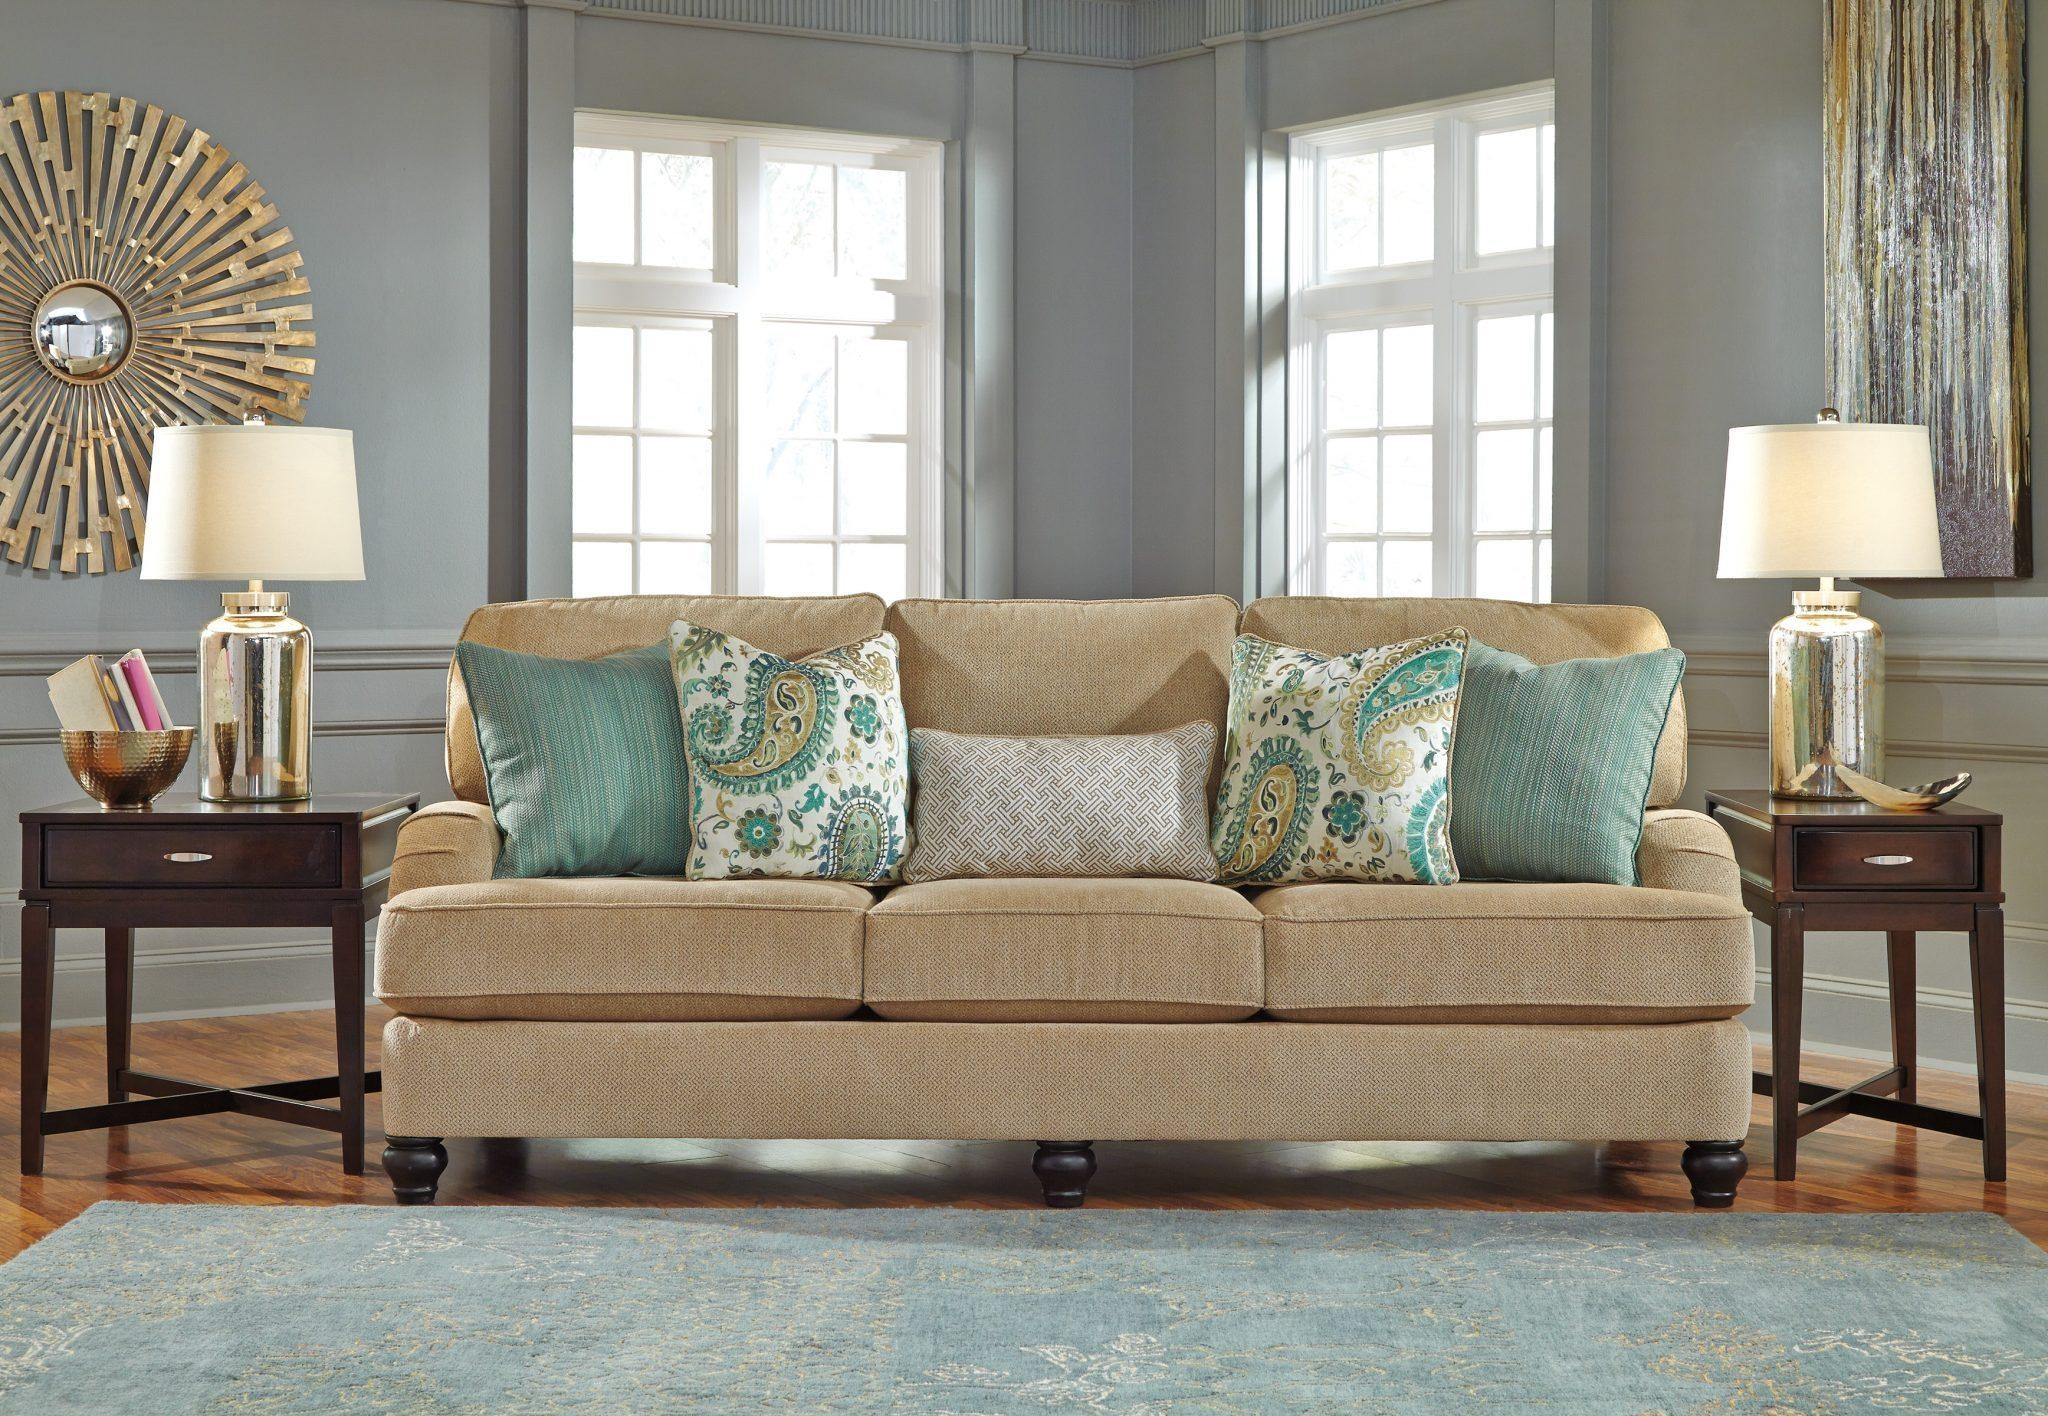 Best Furniture Mentor Oh: Furniture Store – Ashley Furniture Throughout Ashley Tufted Sofa (View 3 of 20)